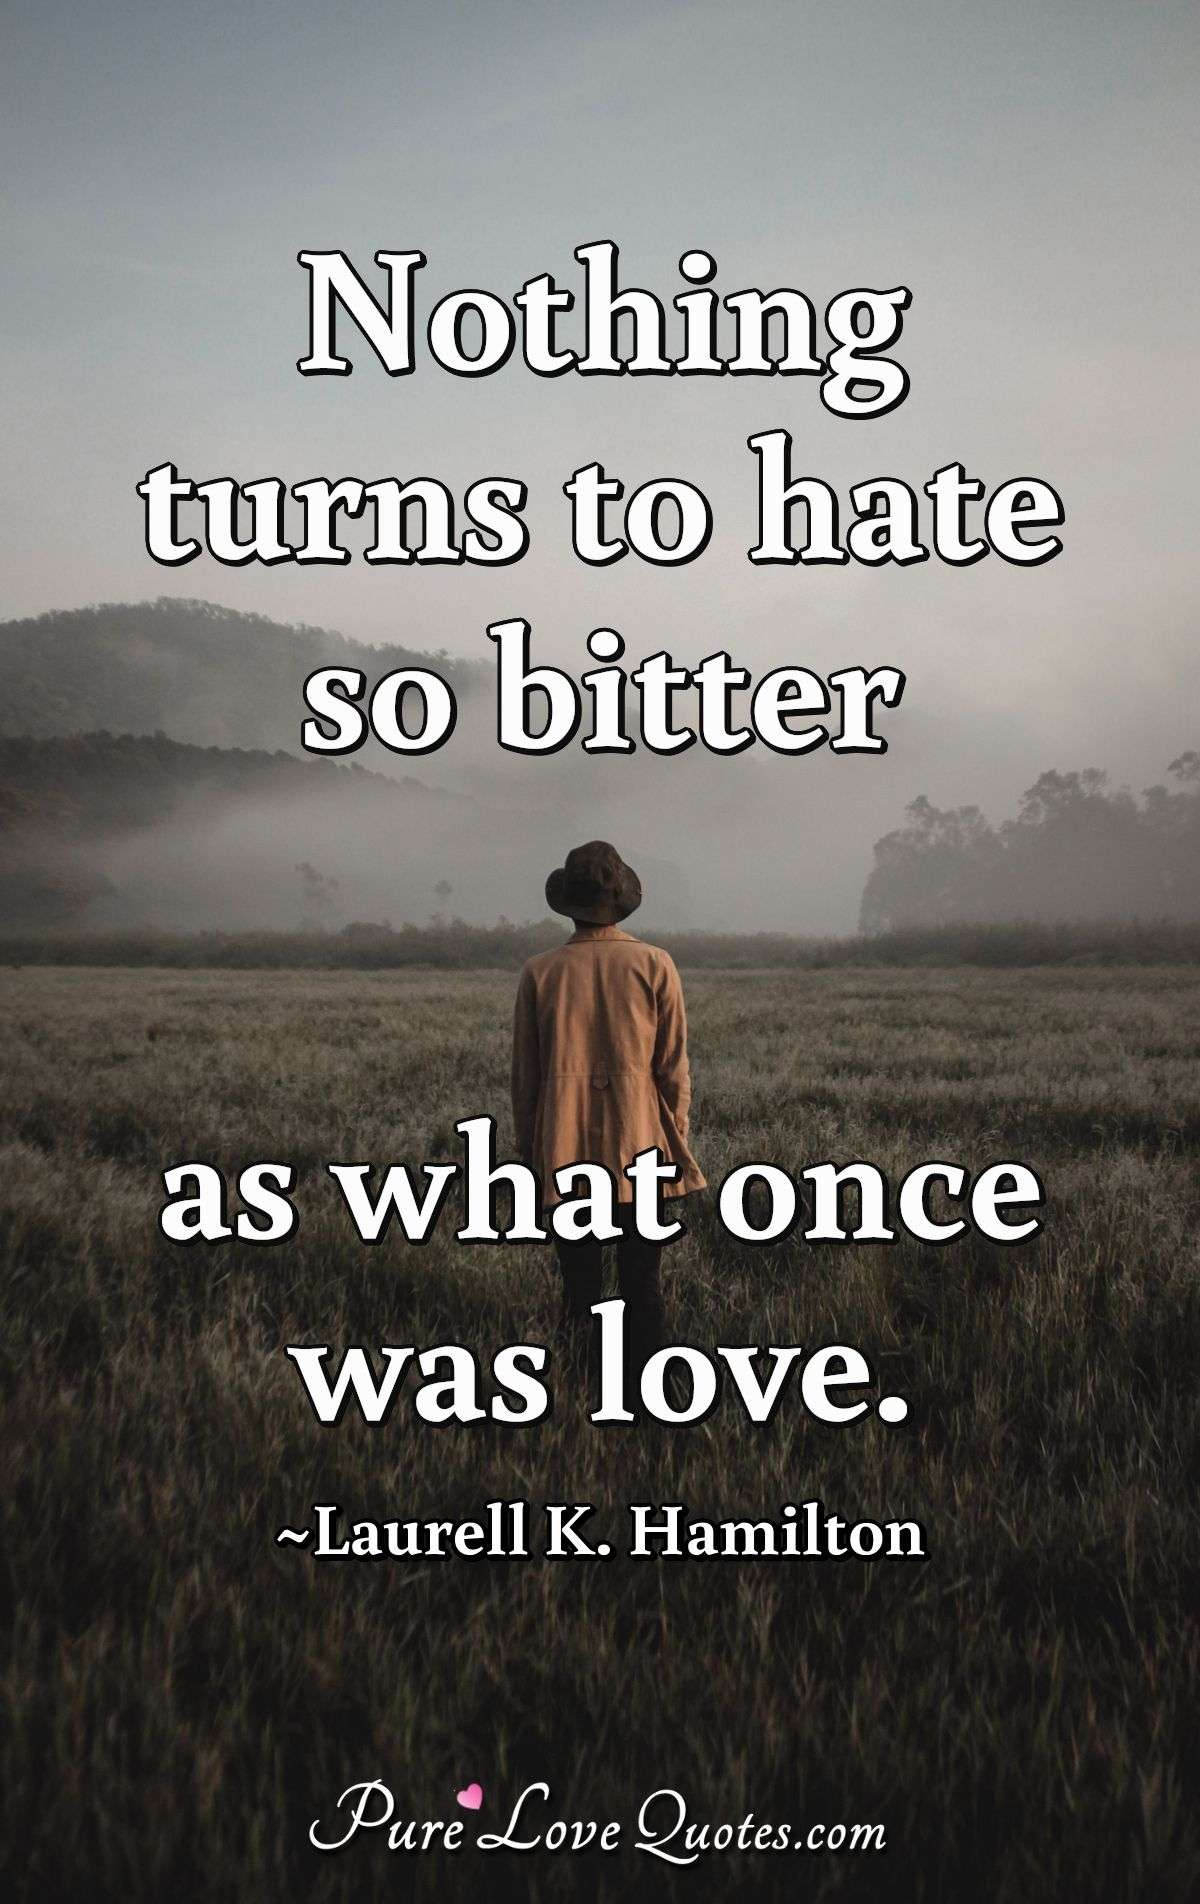 Nothing turns to hate so bitter as what once was love. - Laurell K. Hamilton